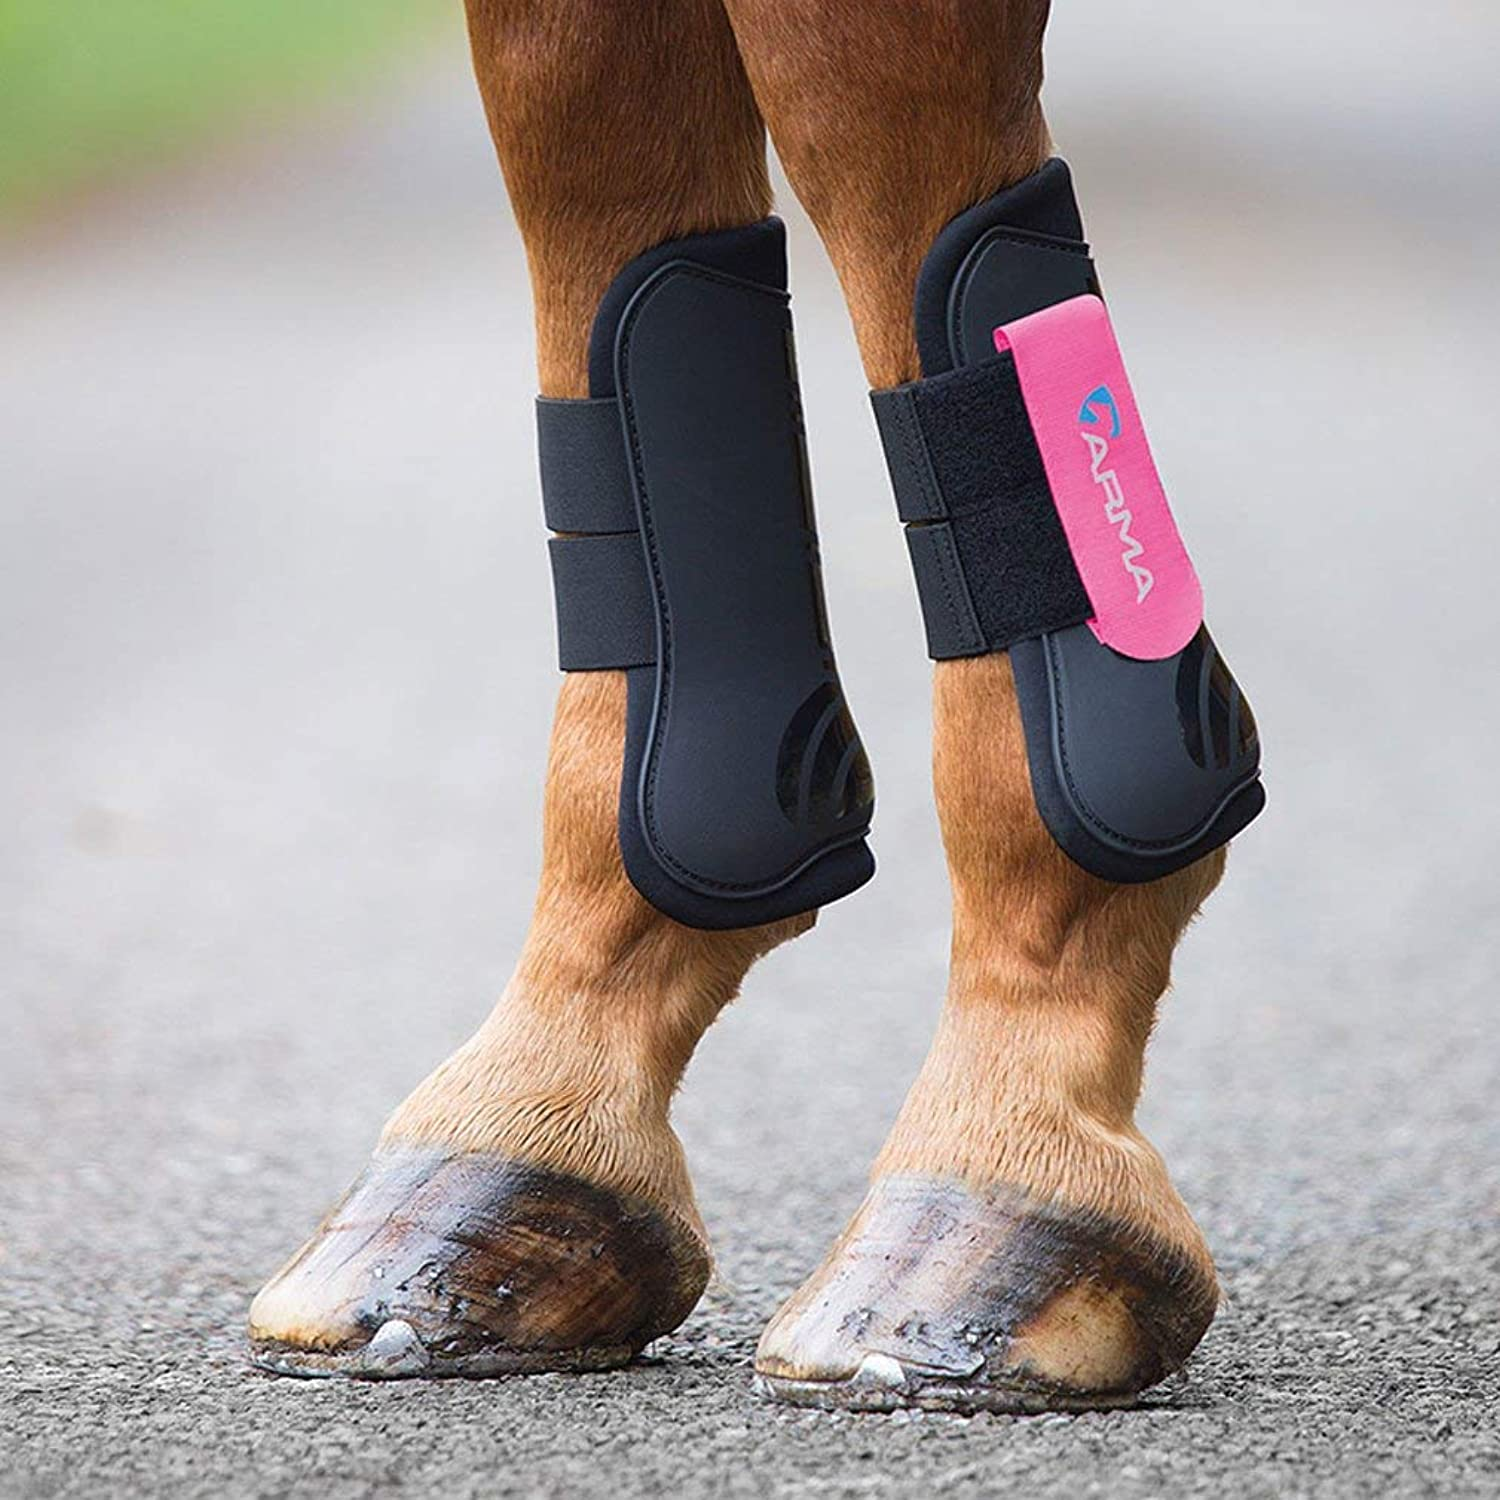 Shires ARMA Tendon Boot Full Size Black Pink